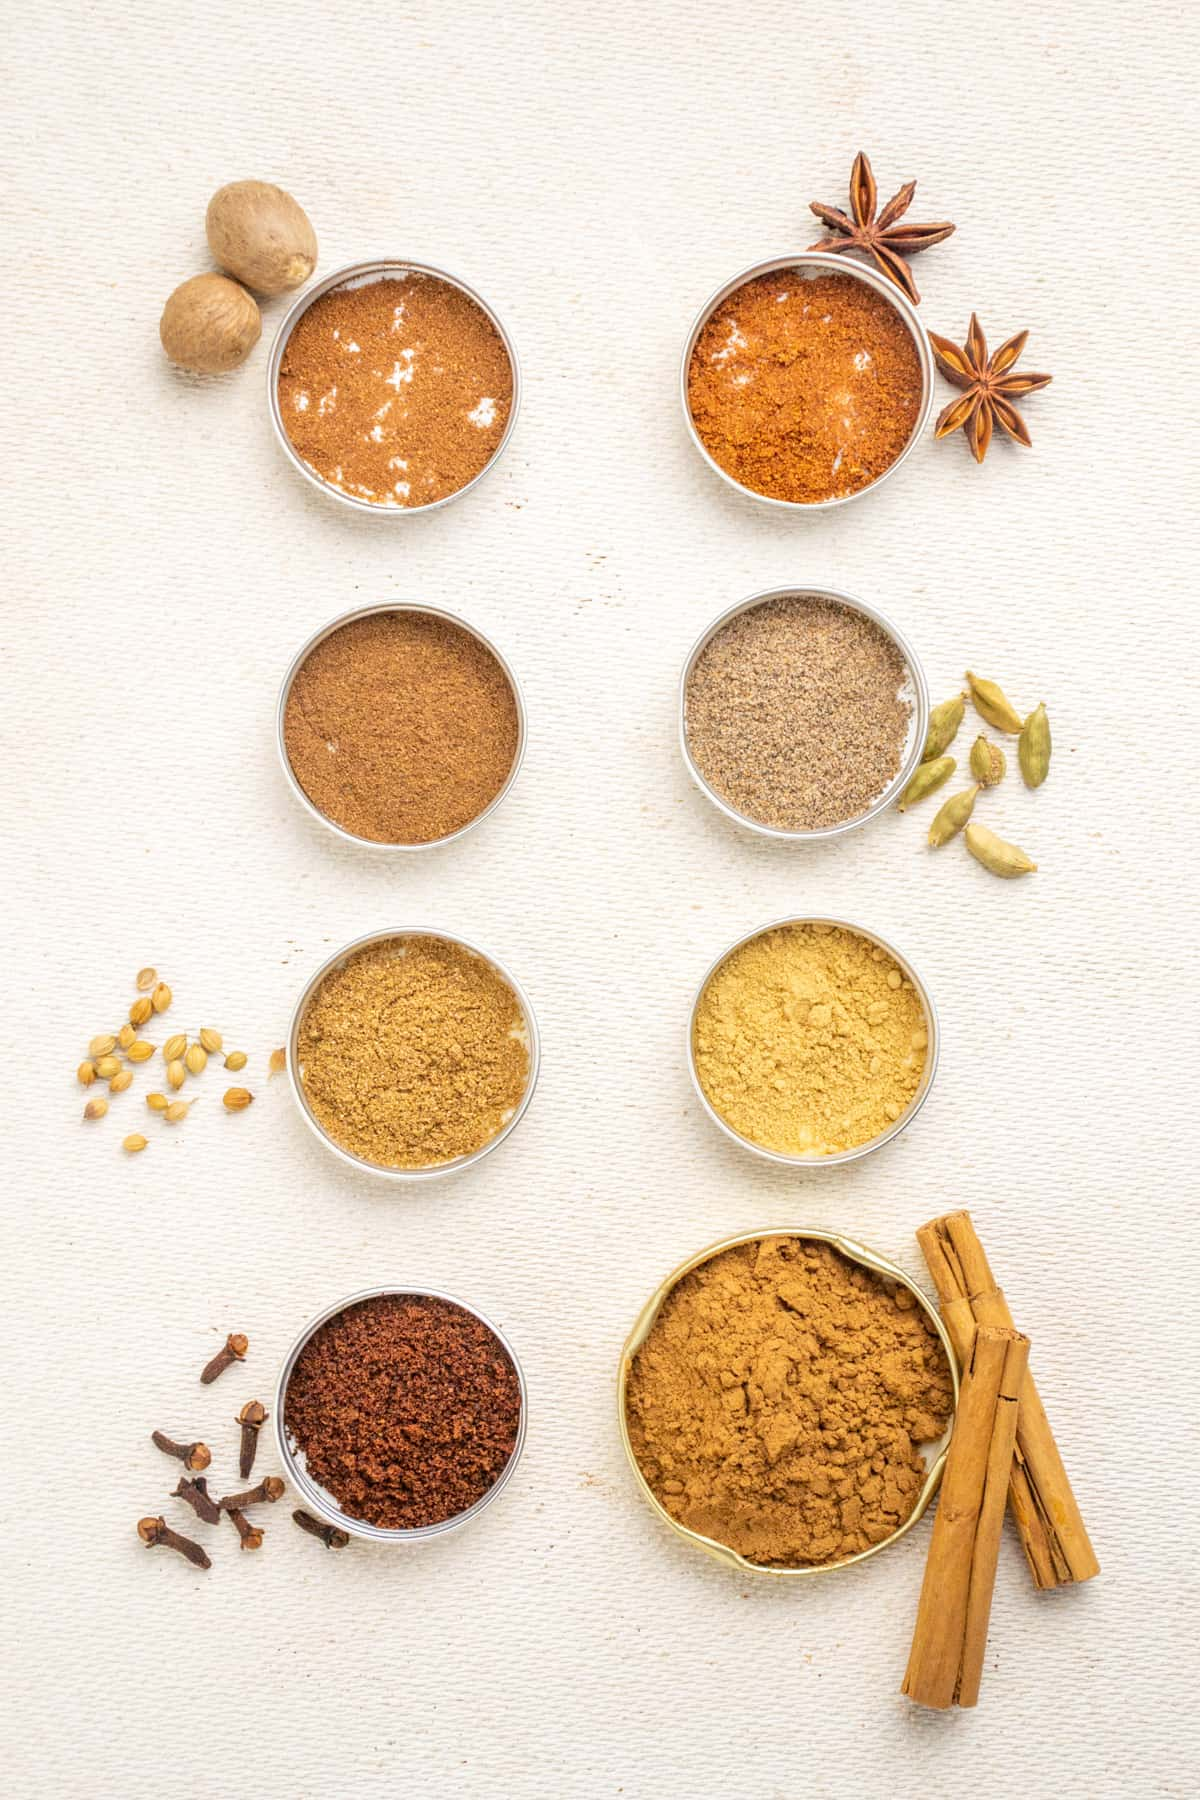 Spice jar lids arranged in two rows containing the ingredients for gingerbread spice mix.